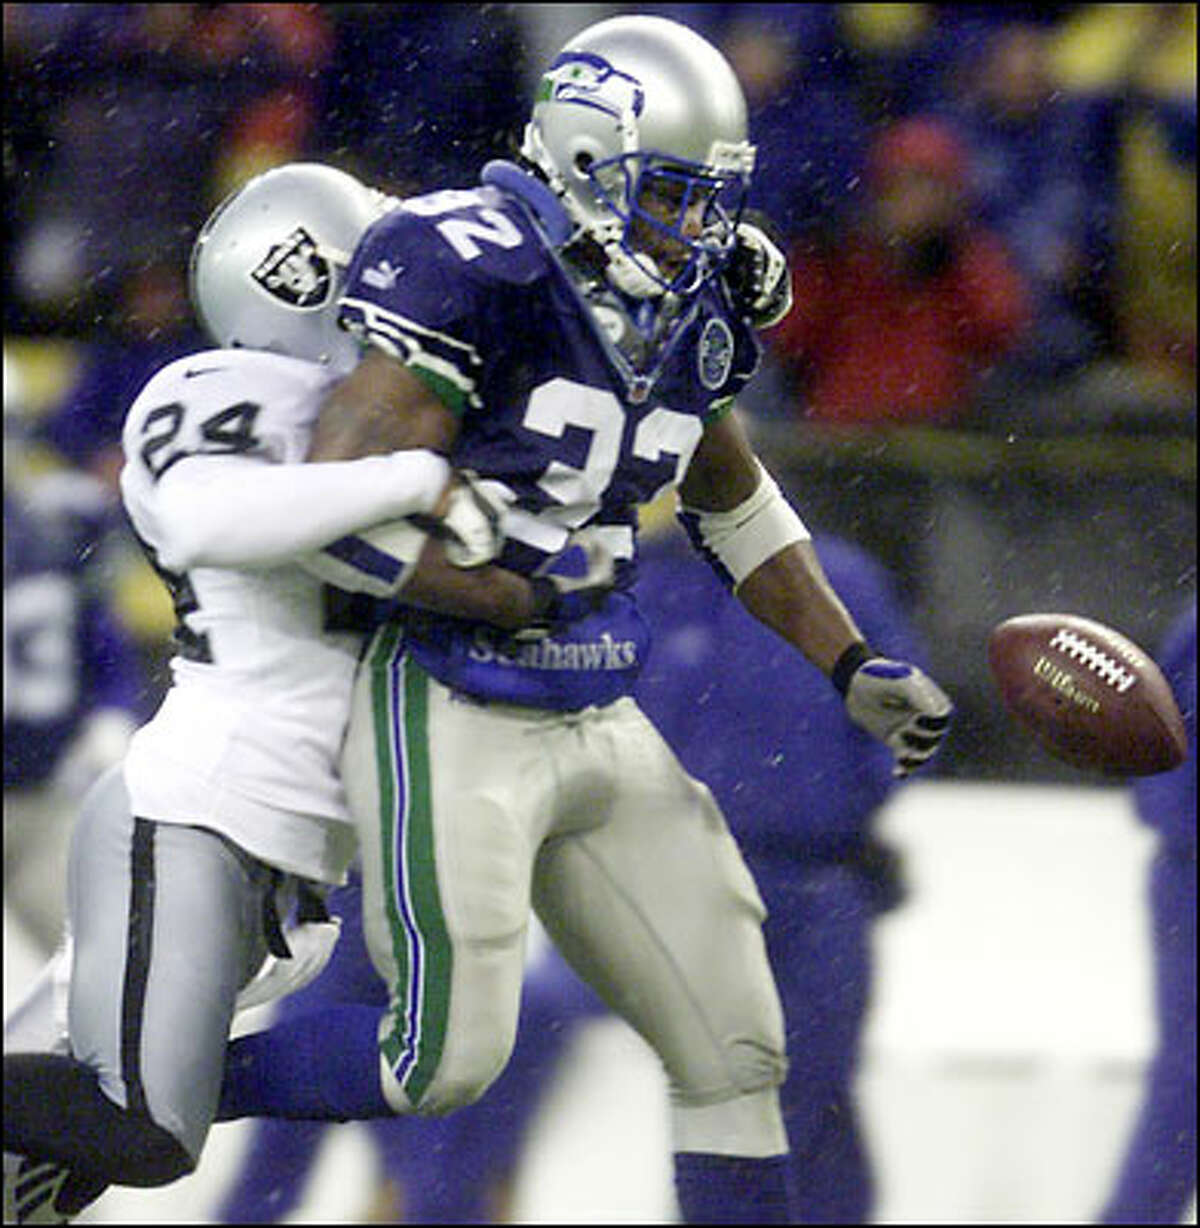 On the key play of the game, Oakland's Charles Woodson strips Ricky Watters of the football, which improbably turned into a Seahawks safety and paved the way to victory.